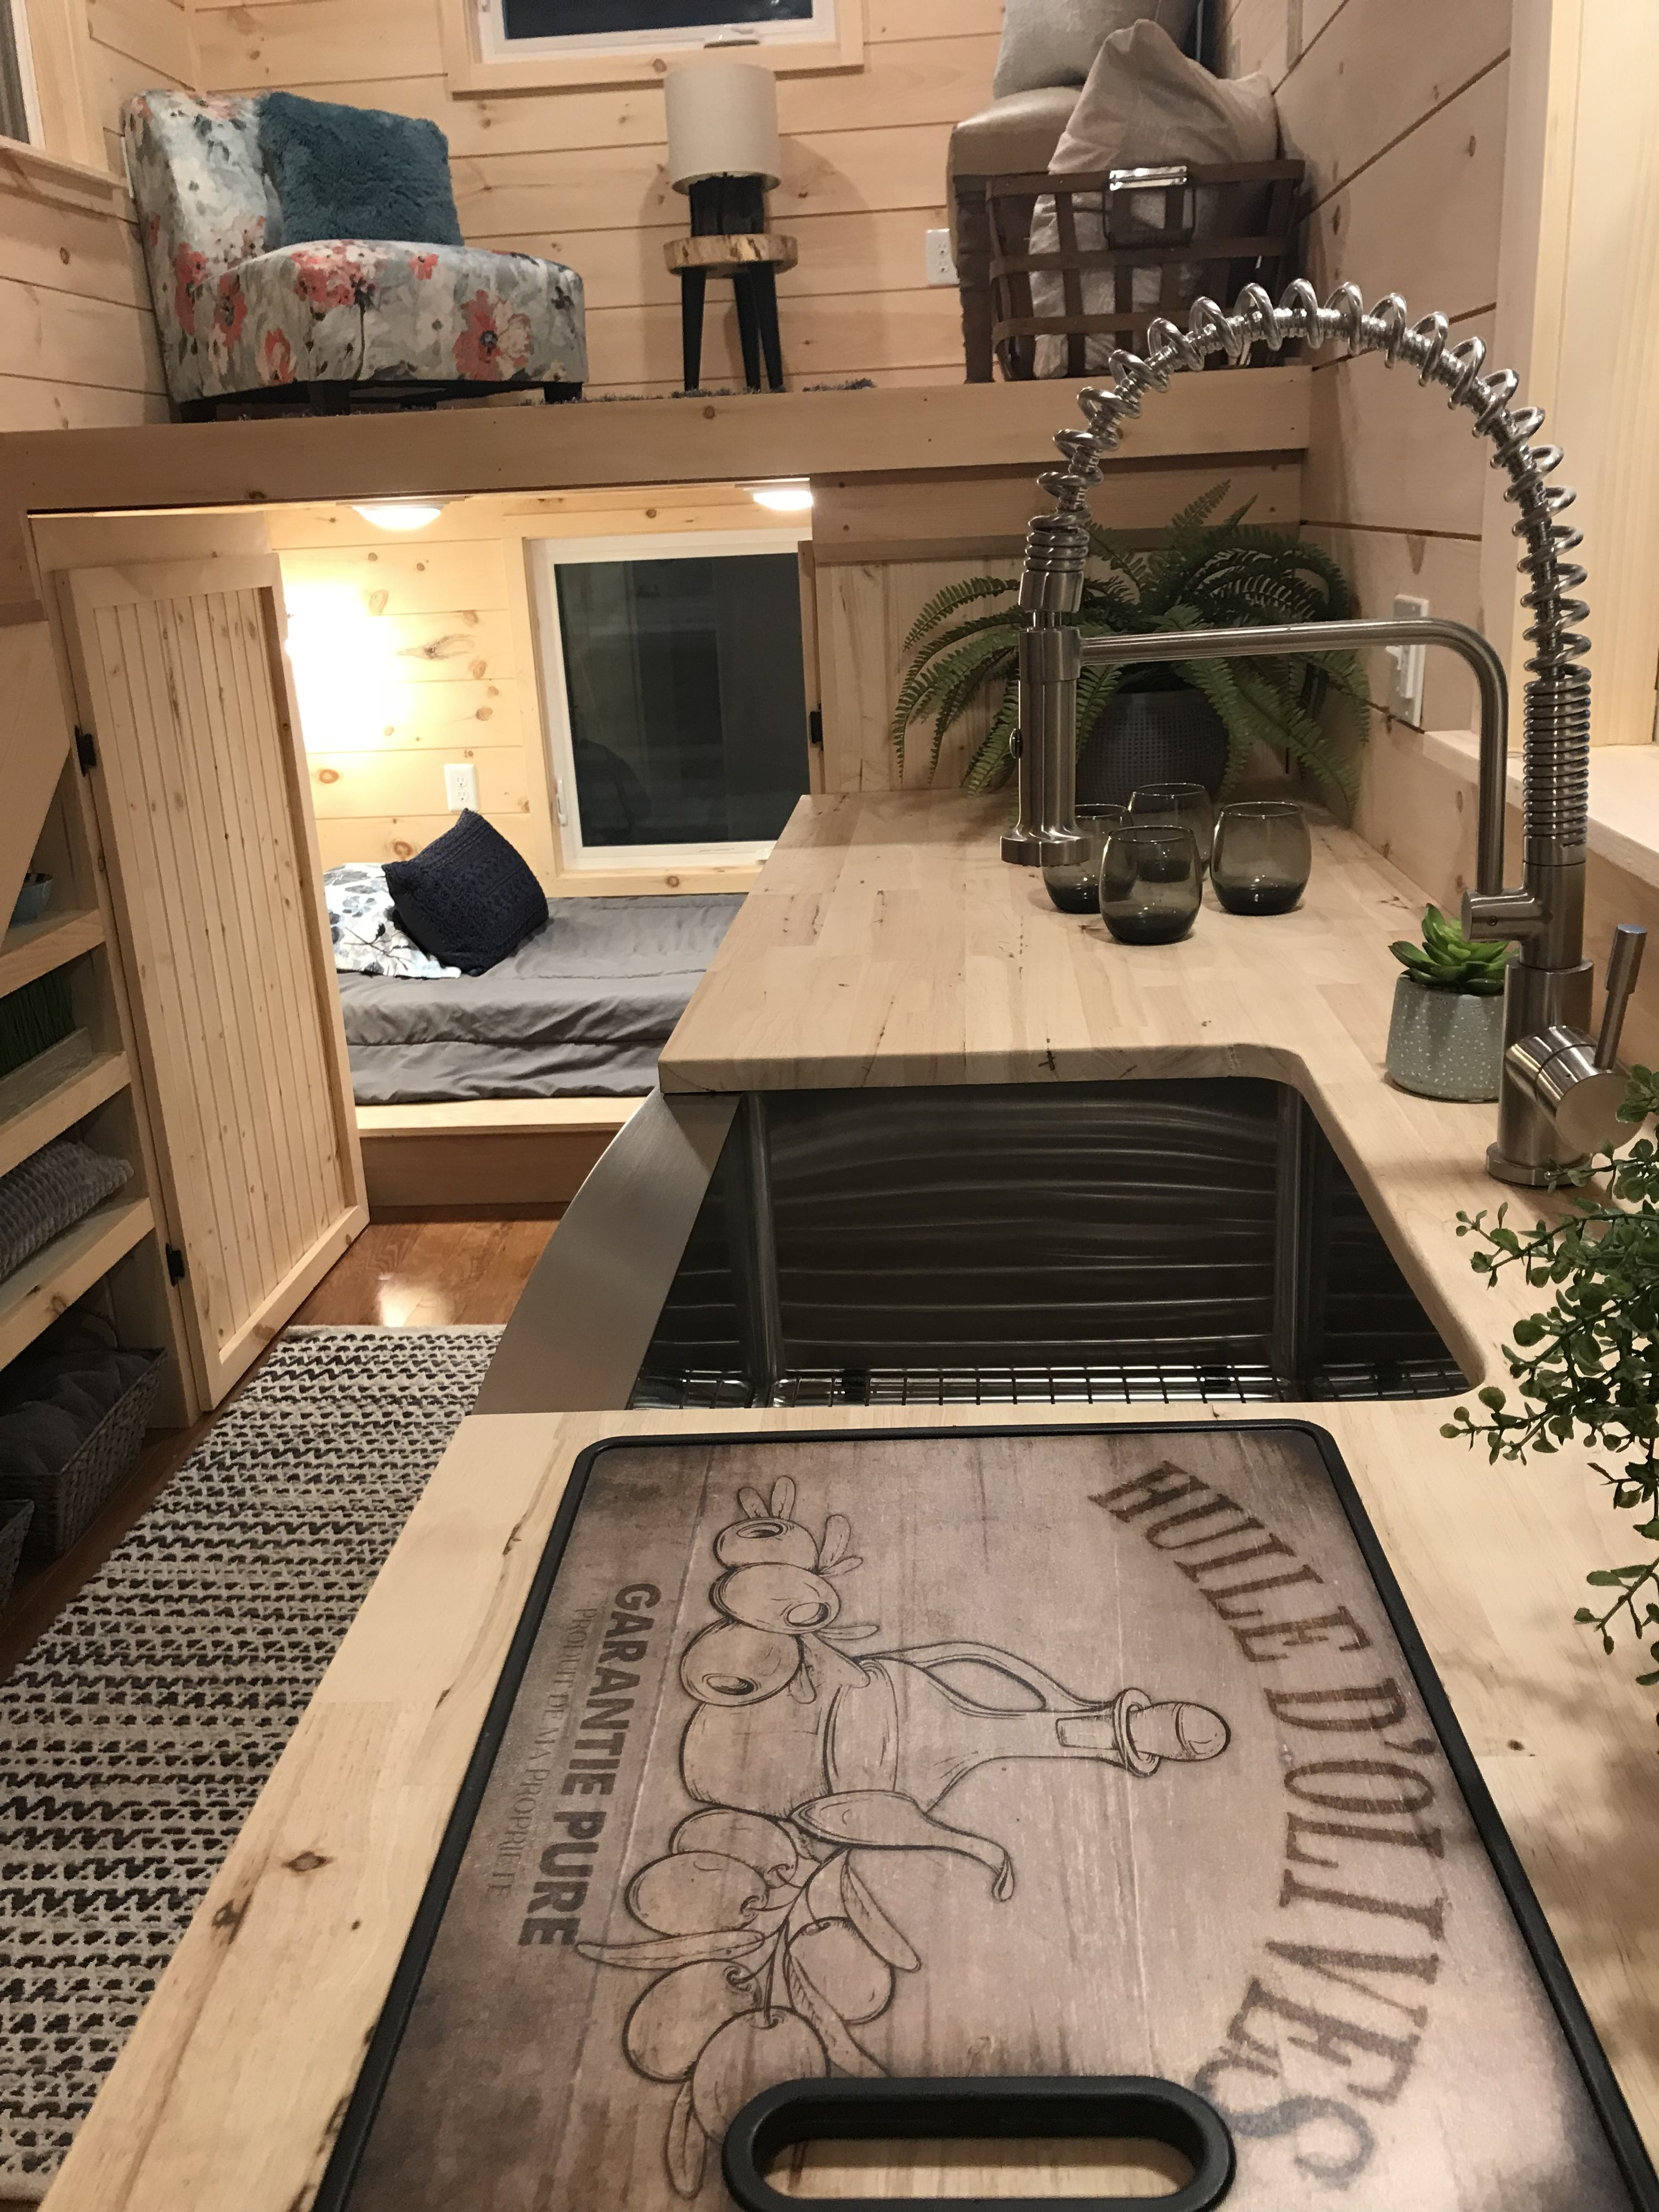 Sweet Dream Is An 8 X 22 Incredible Tiny Home With A Base Price Of 36 250 Plus The Customer S C Tiny House Cabin Tiny House Plans Affordable Interior Design